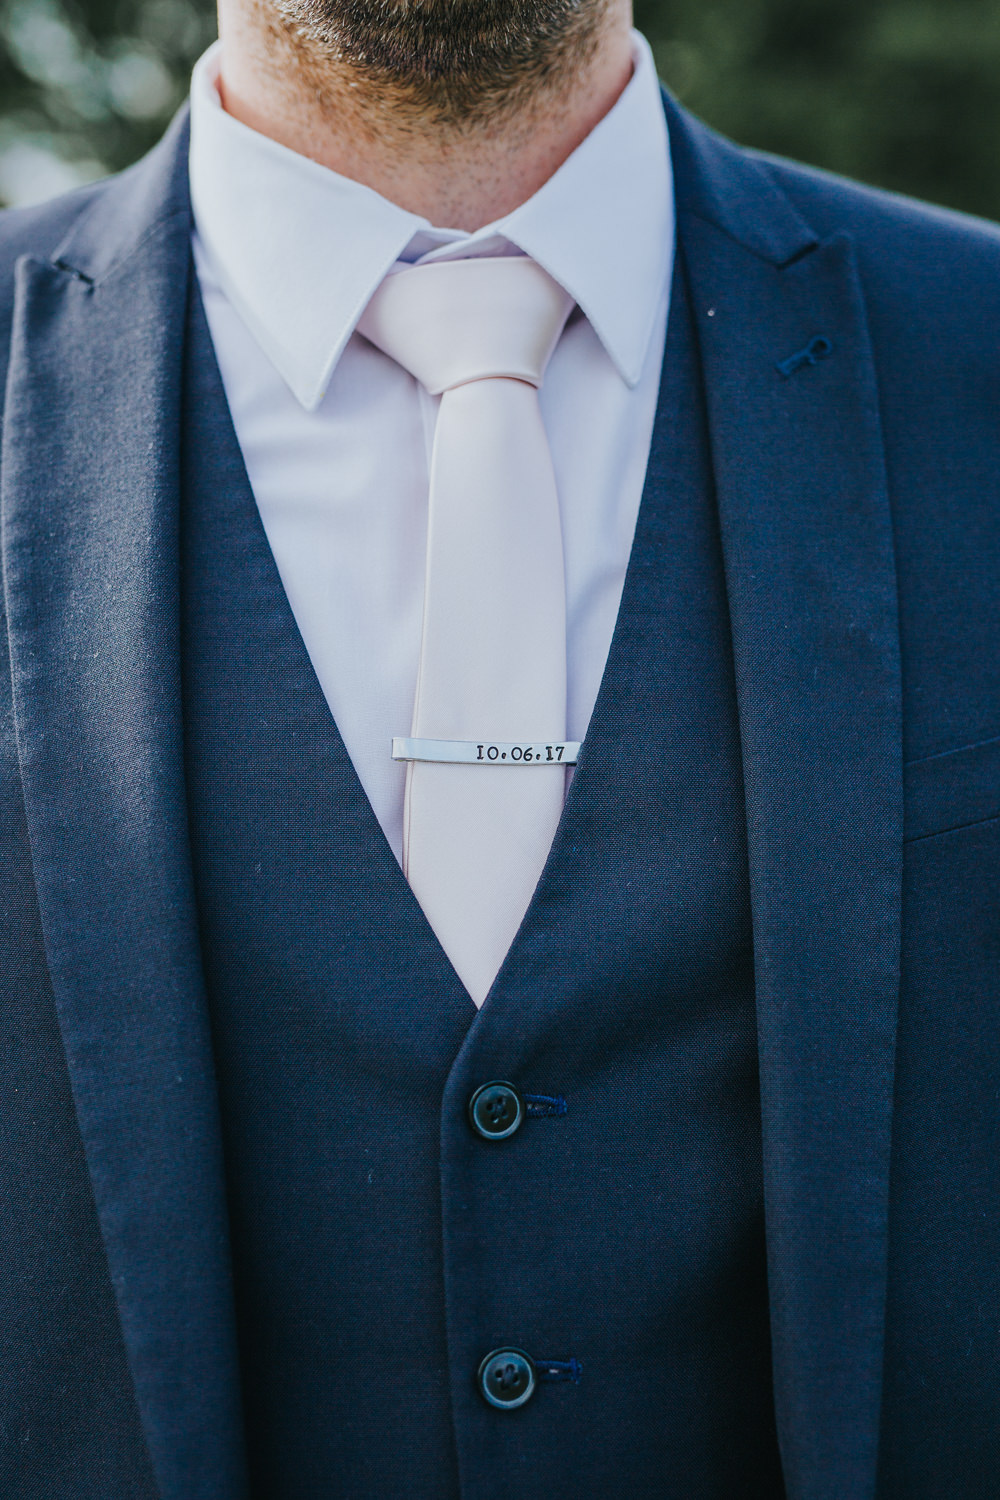 Groom Navy Suit White Tie Pin Personalised Colourful Bright Summer Pub Wedding Charlotte Razzell Photography